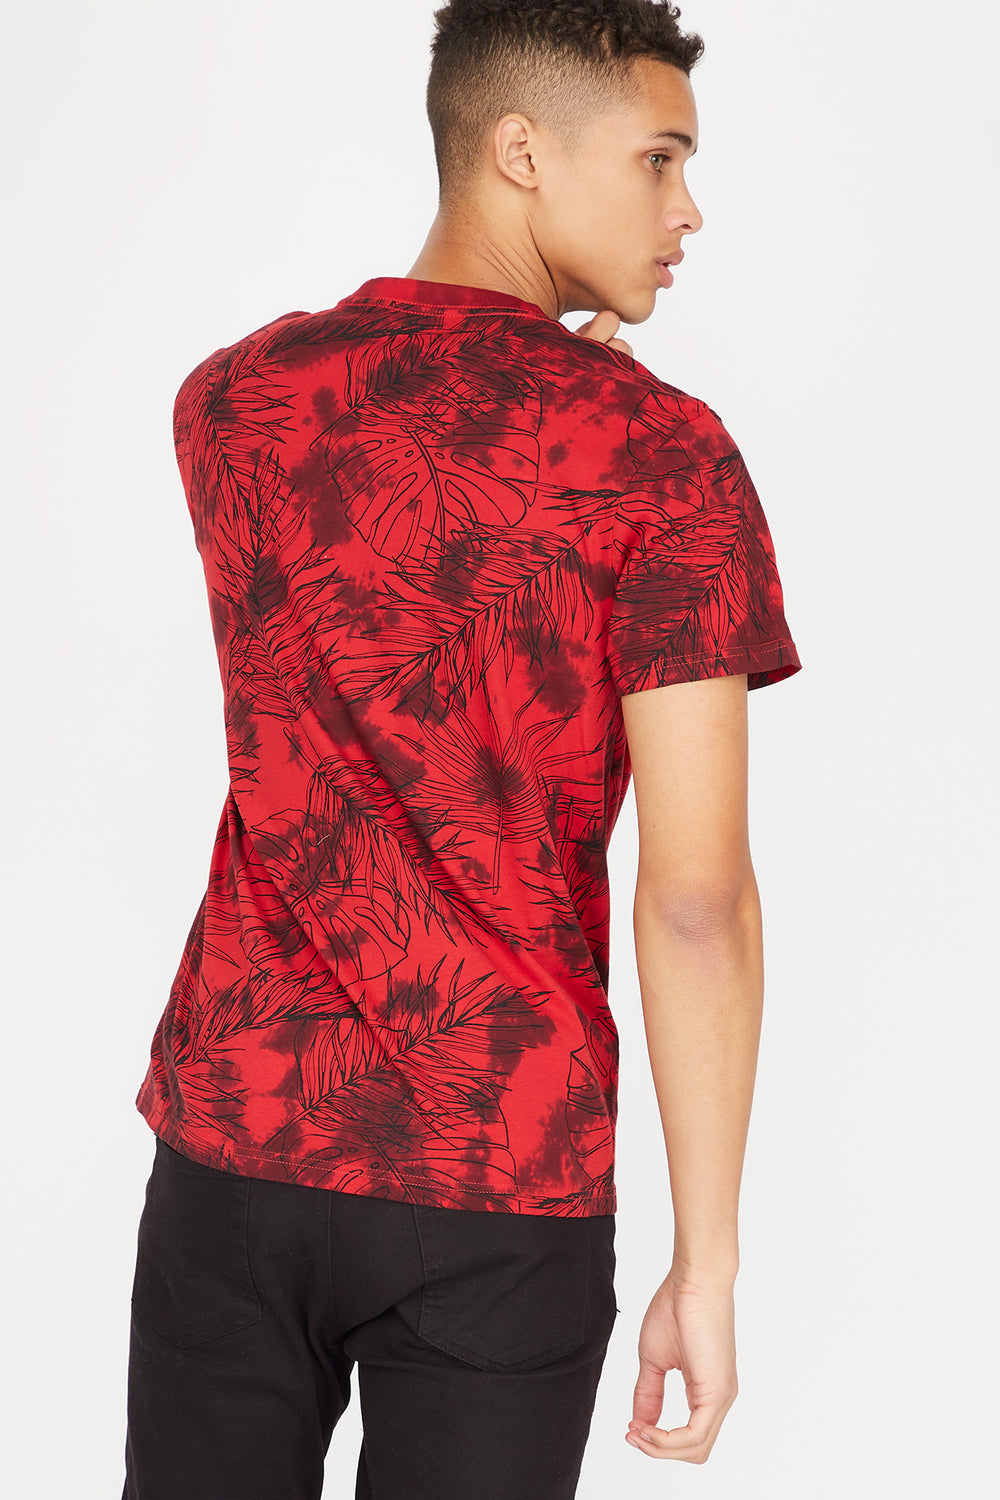 Tie-Dye Palm Leaves Printed Pocket T-Shirt Red